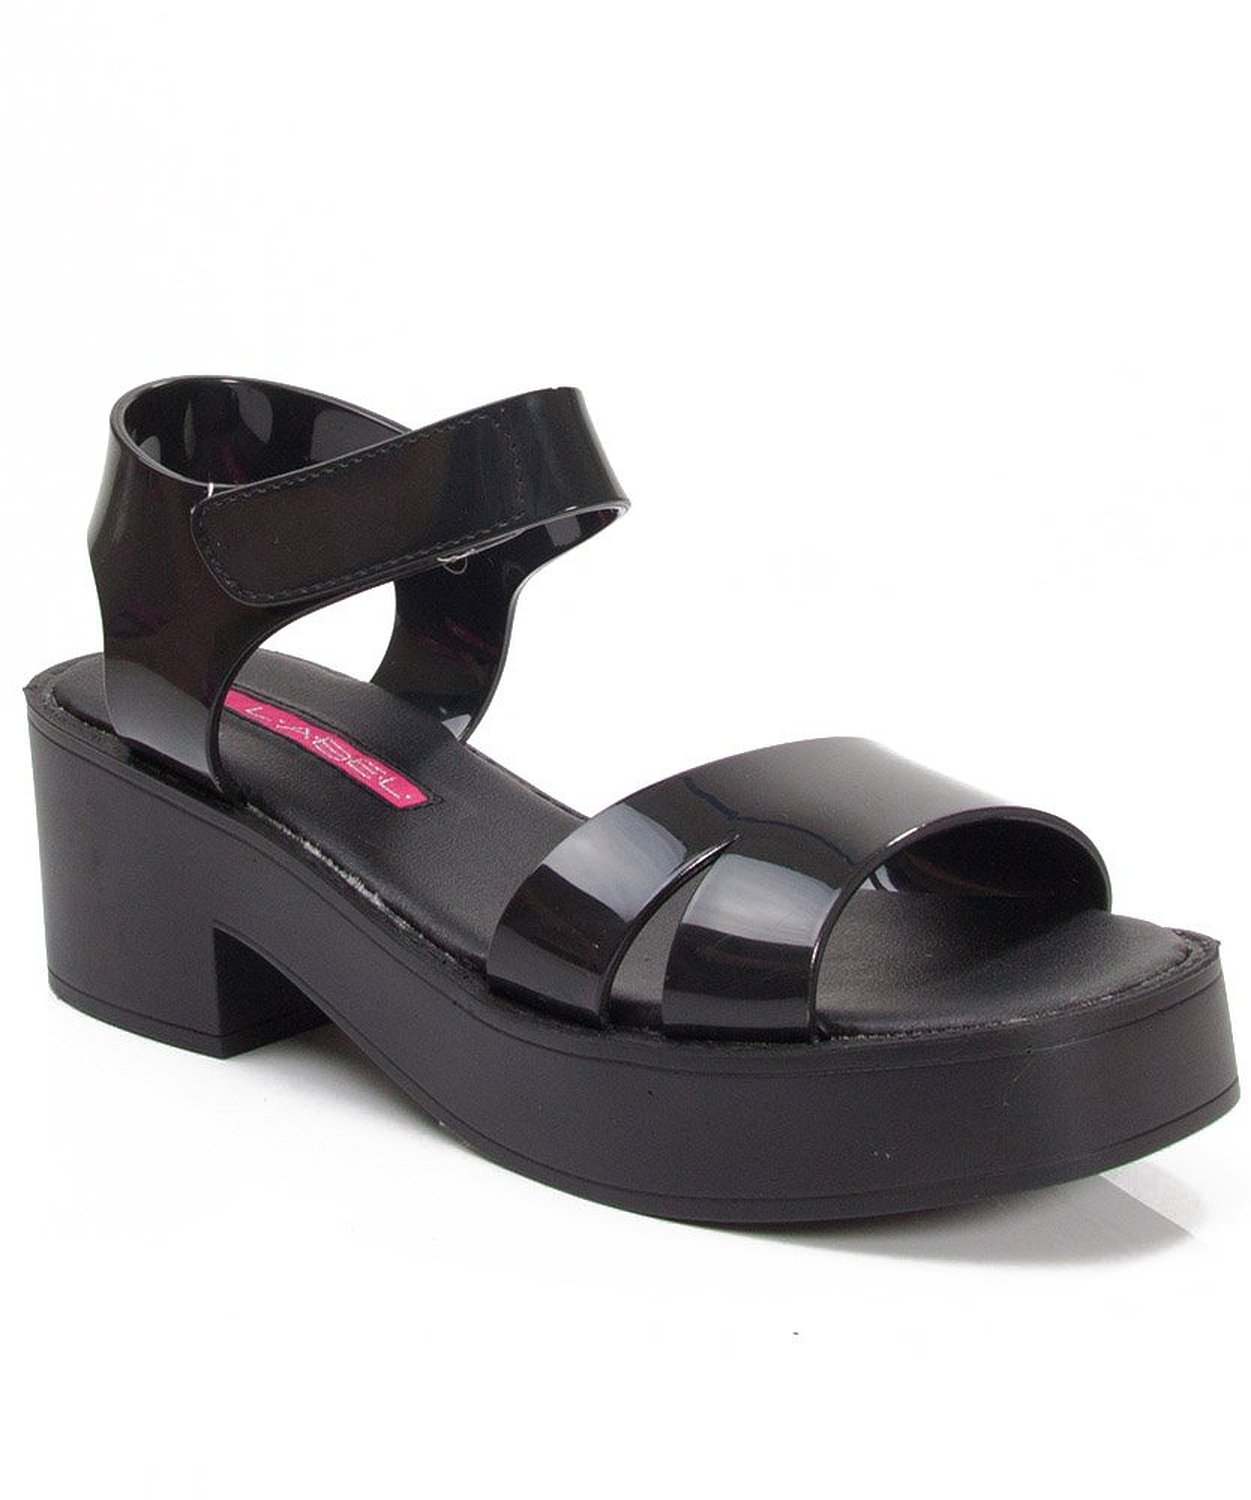 Amazon.com: Women's Fashion Jelly Sandals BLACK JELLY (8.5): Shoes